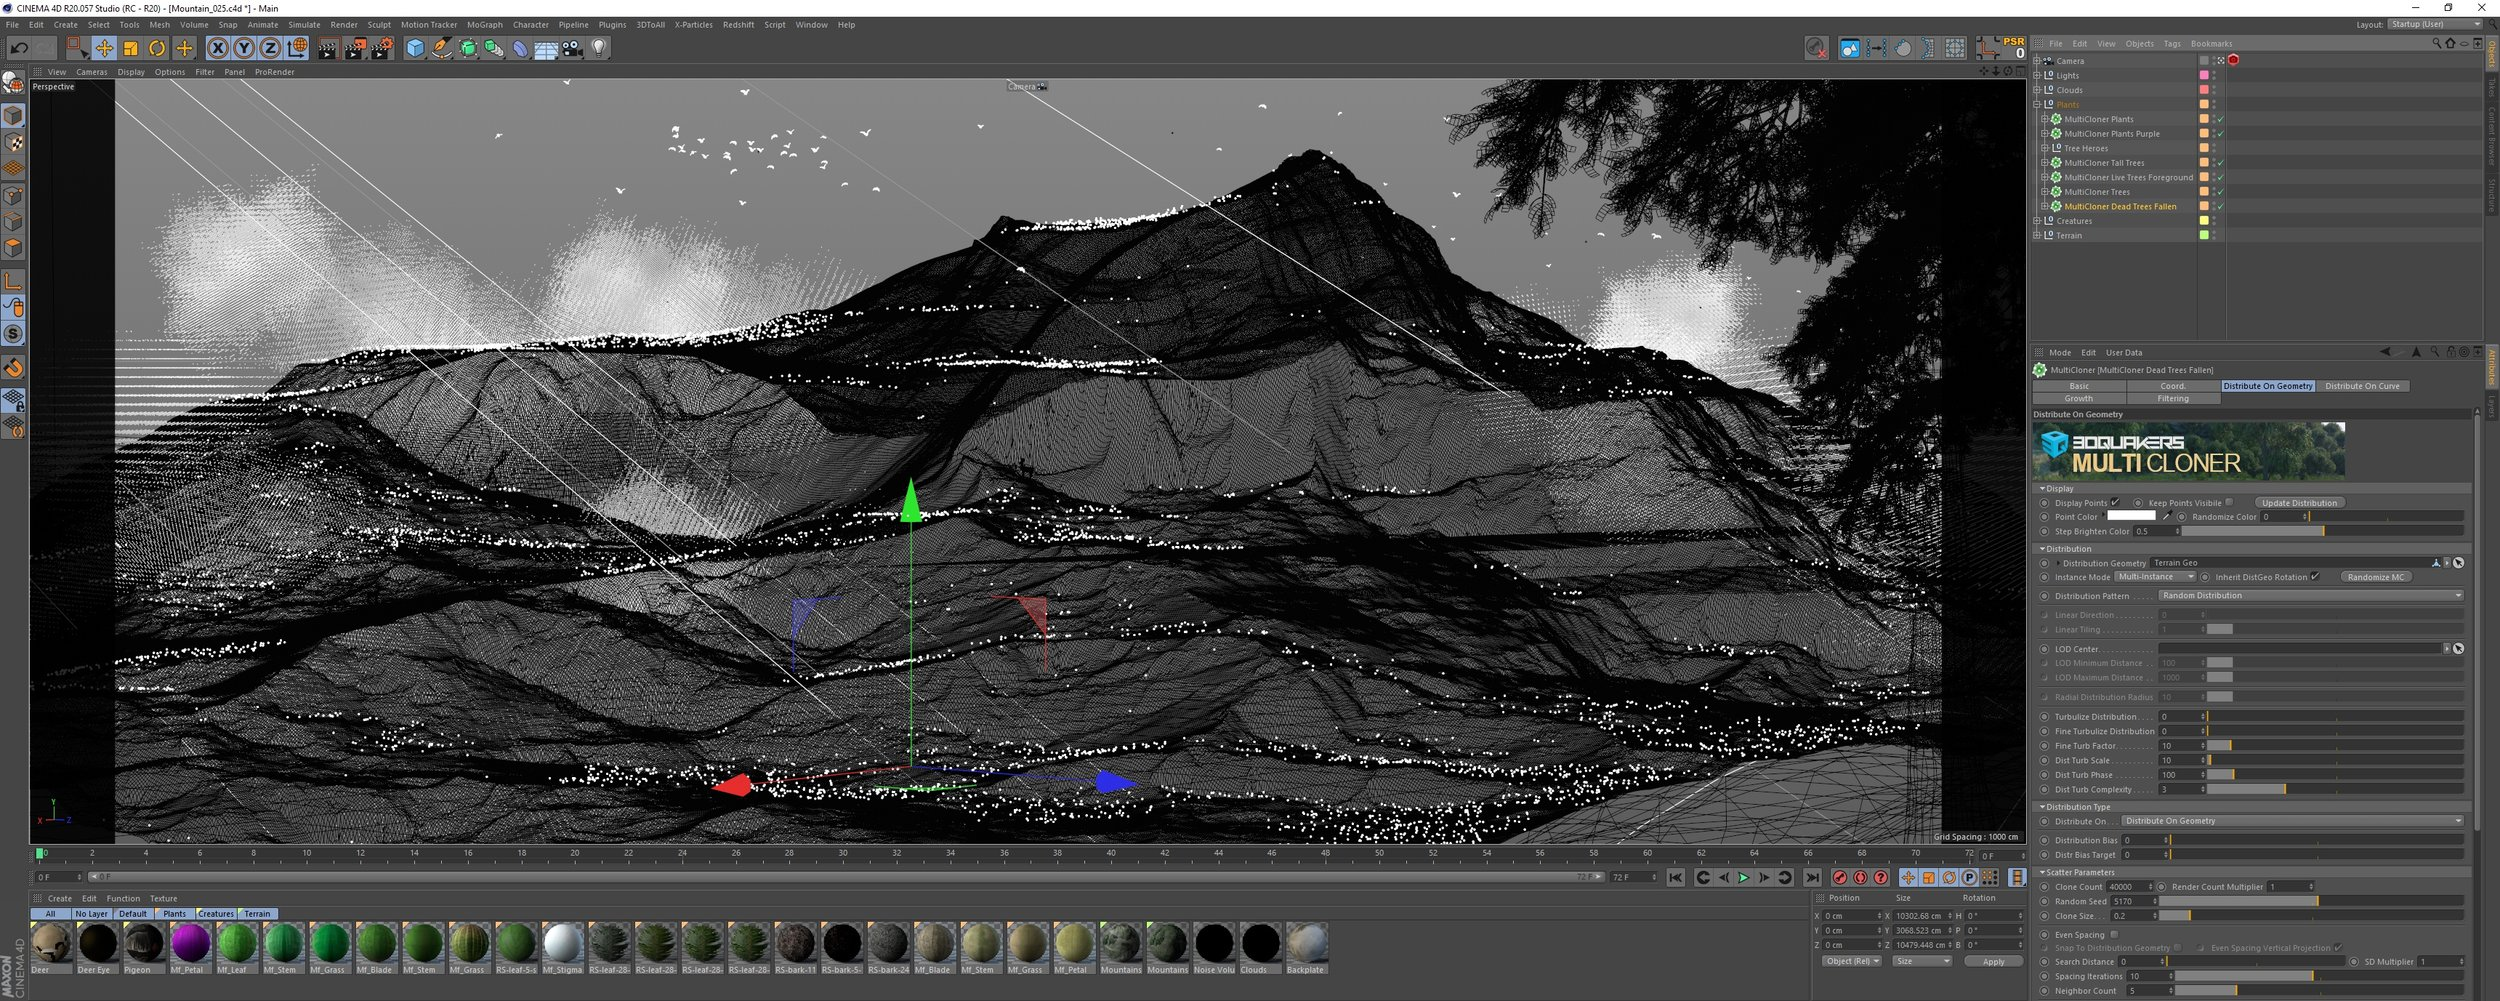 Screenshot of the MultiCloner in action, distributing trees on flat surfaces.